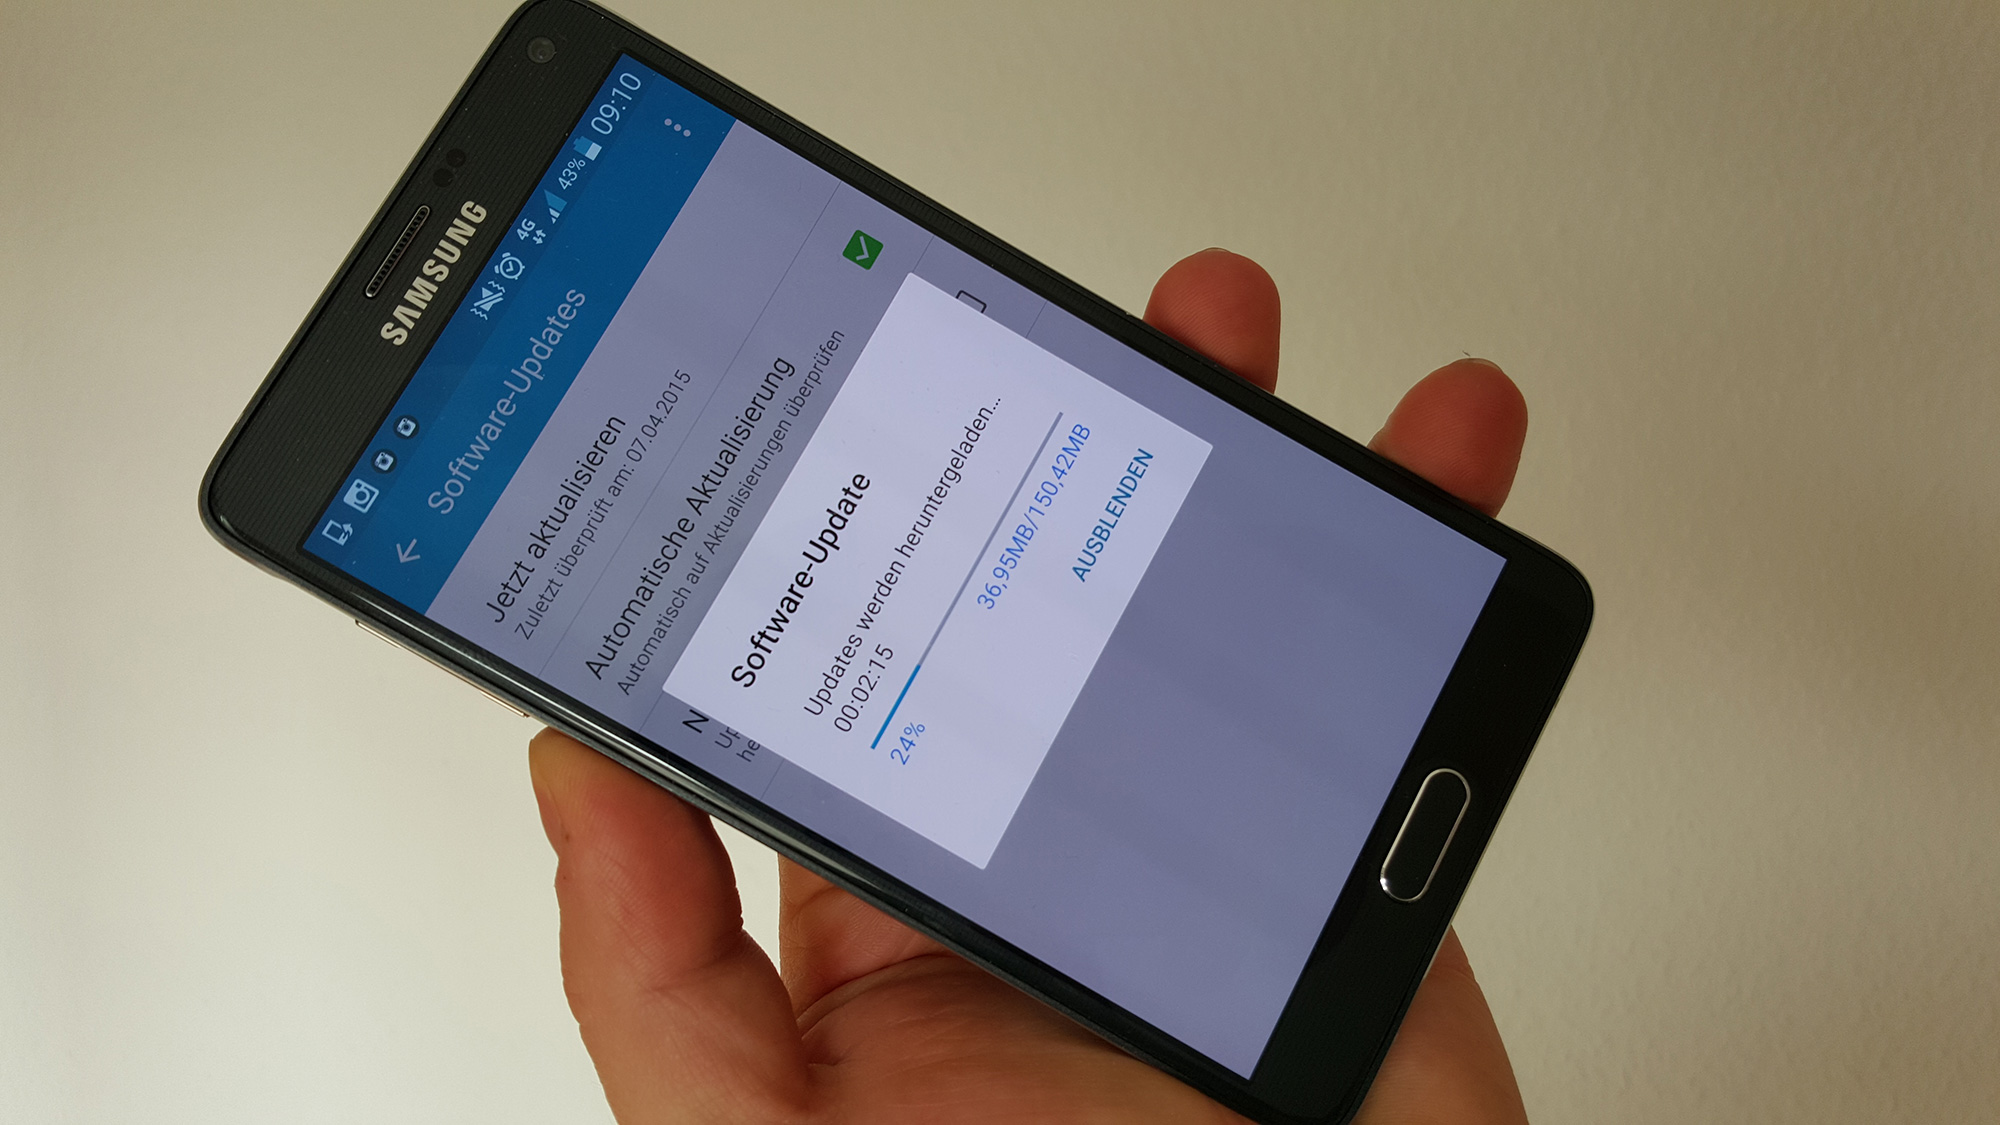 GalaxyNote4_Lollipop_Update2